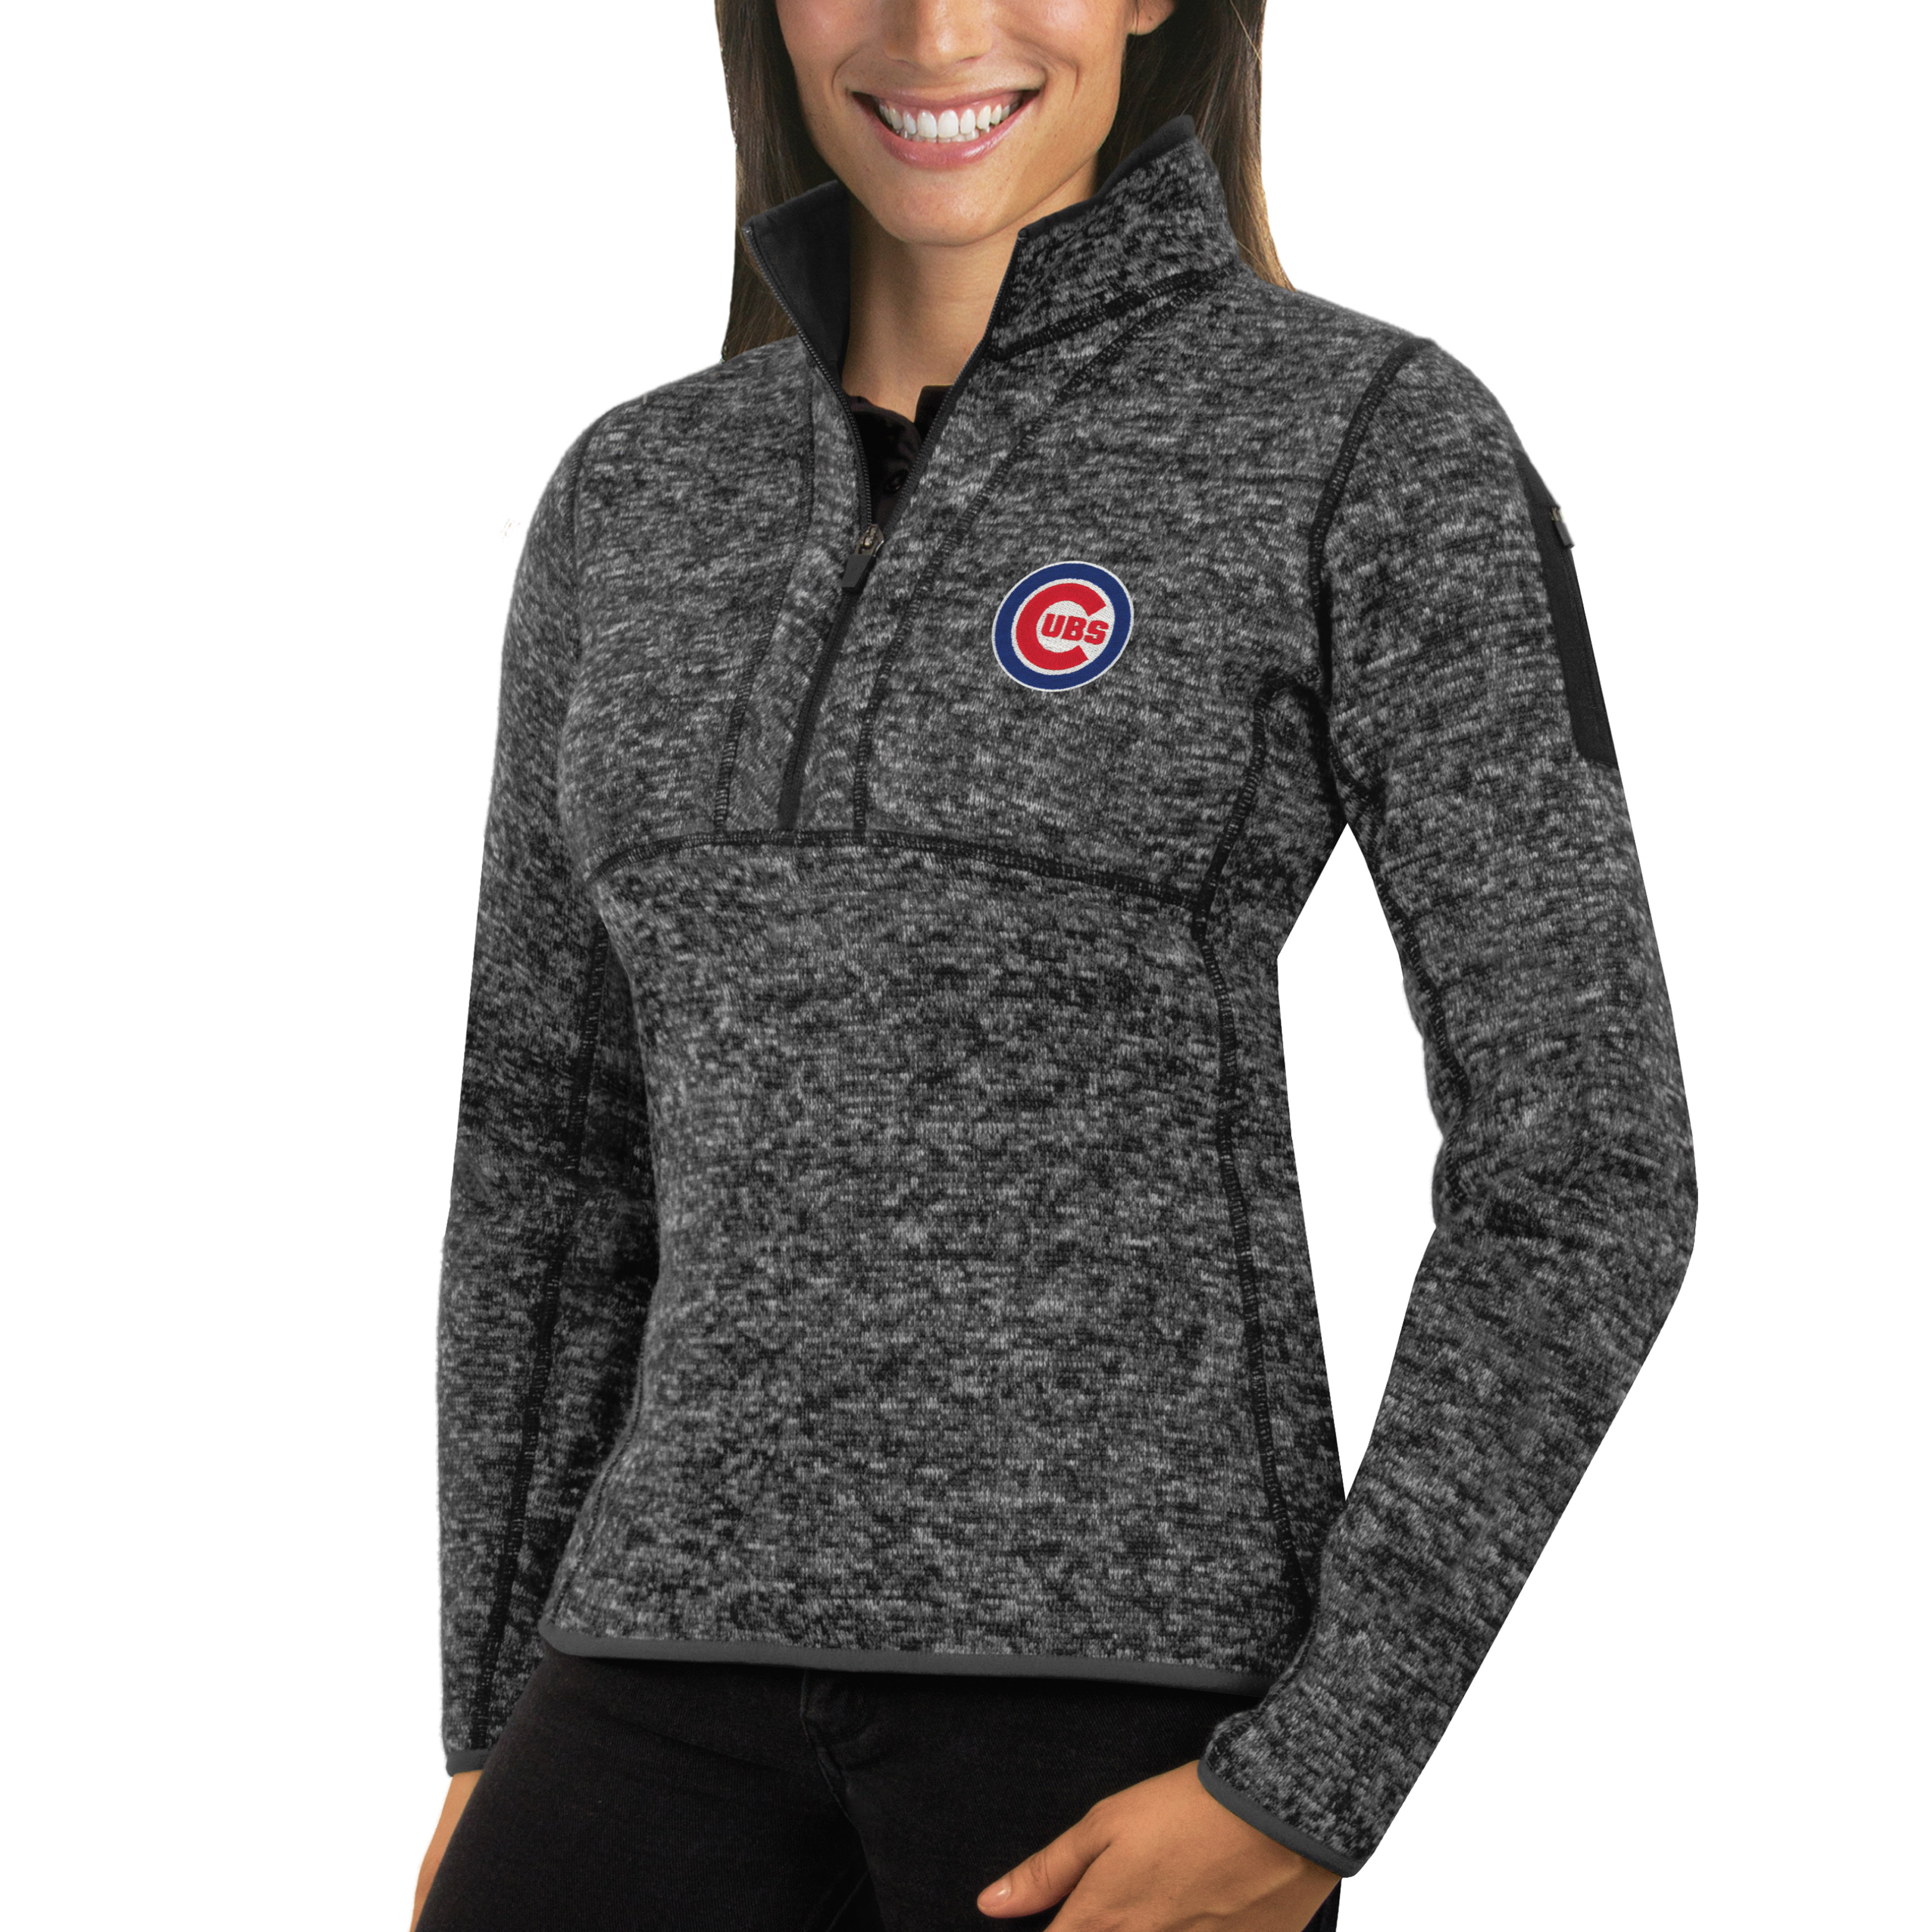 Chicago Cubs Antigua Women's Fortune Half-Zip Pullover Sweater - Heathered Charcoal